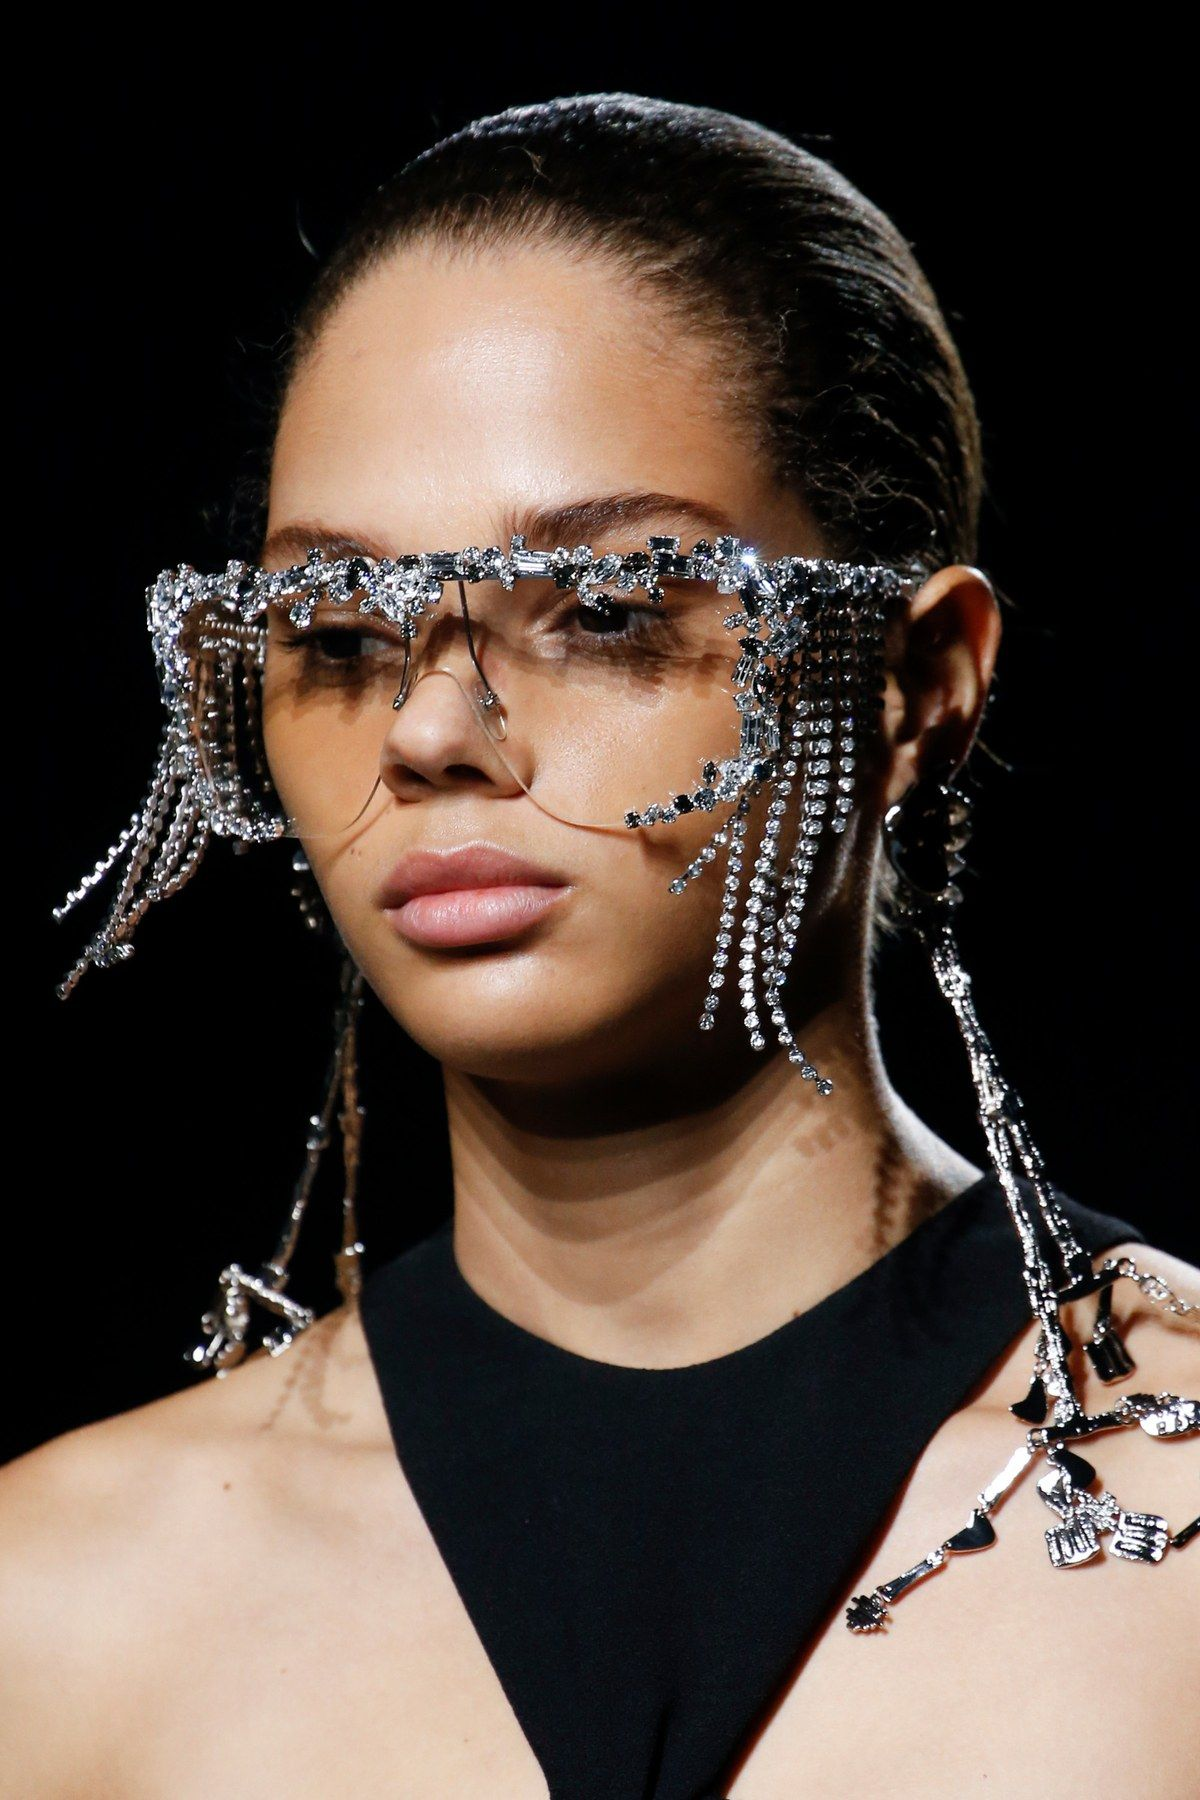 5fb88430e4ac6 Givenchy Spring 2019 Ready-to-Wear collection, runway looks, beauty,  models, and reviews.